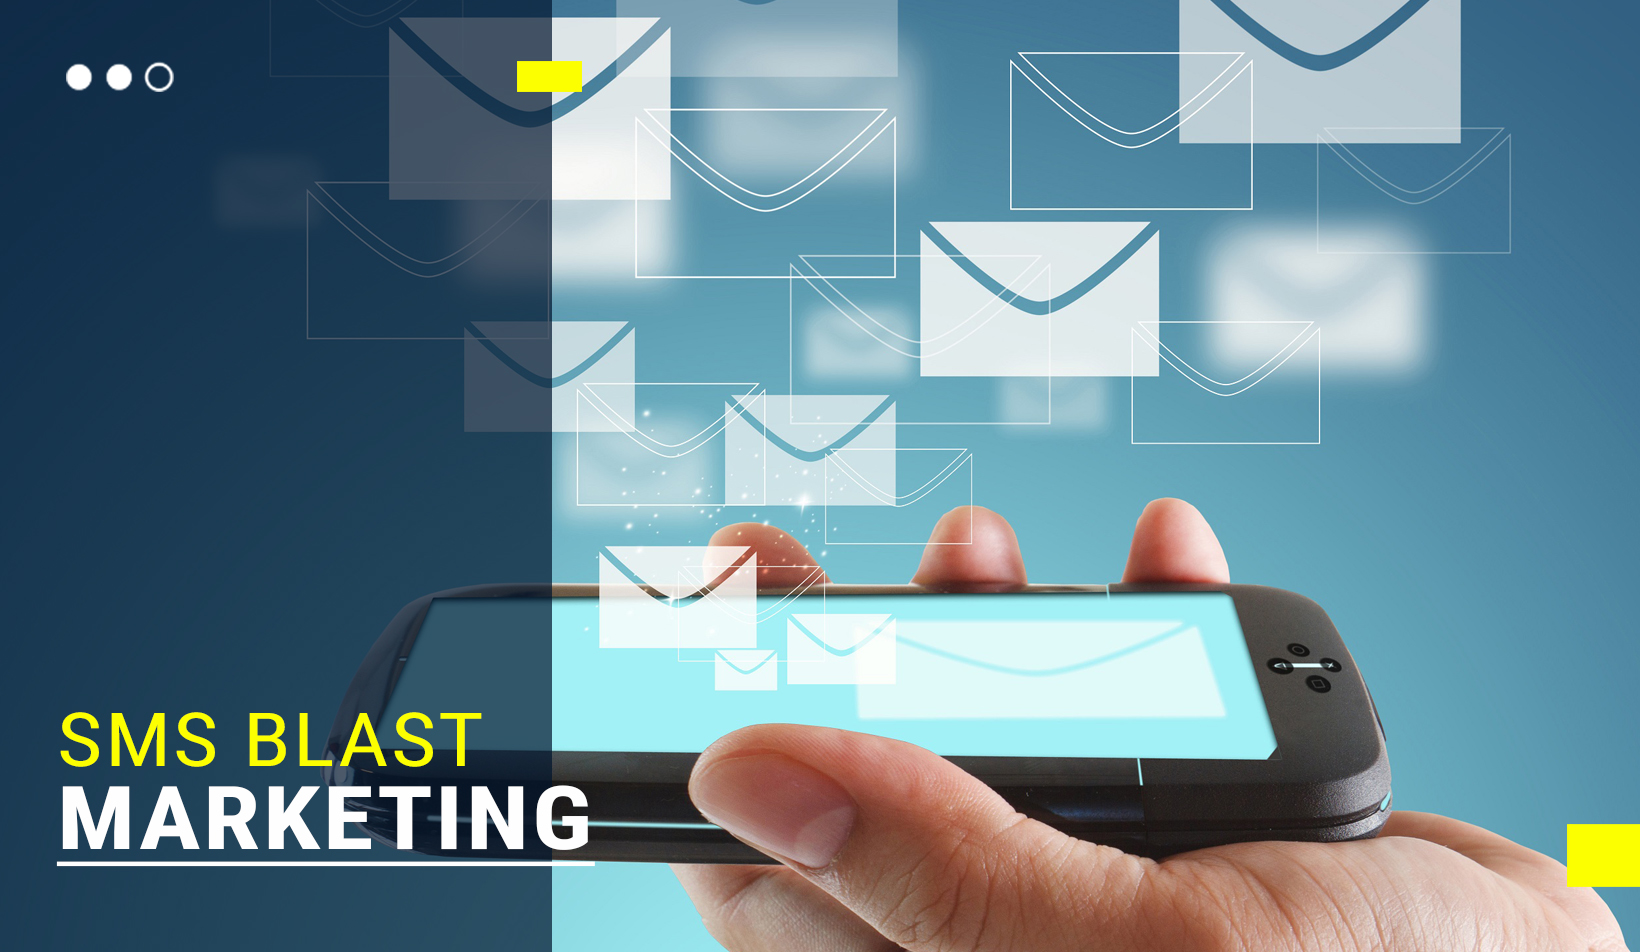 SMS Blast Marketing